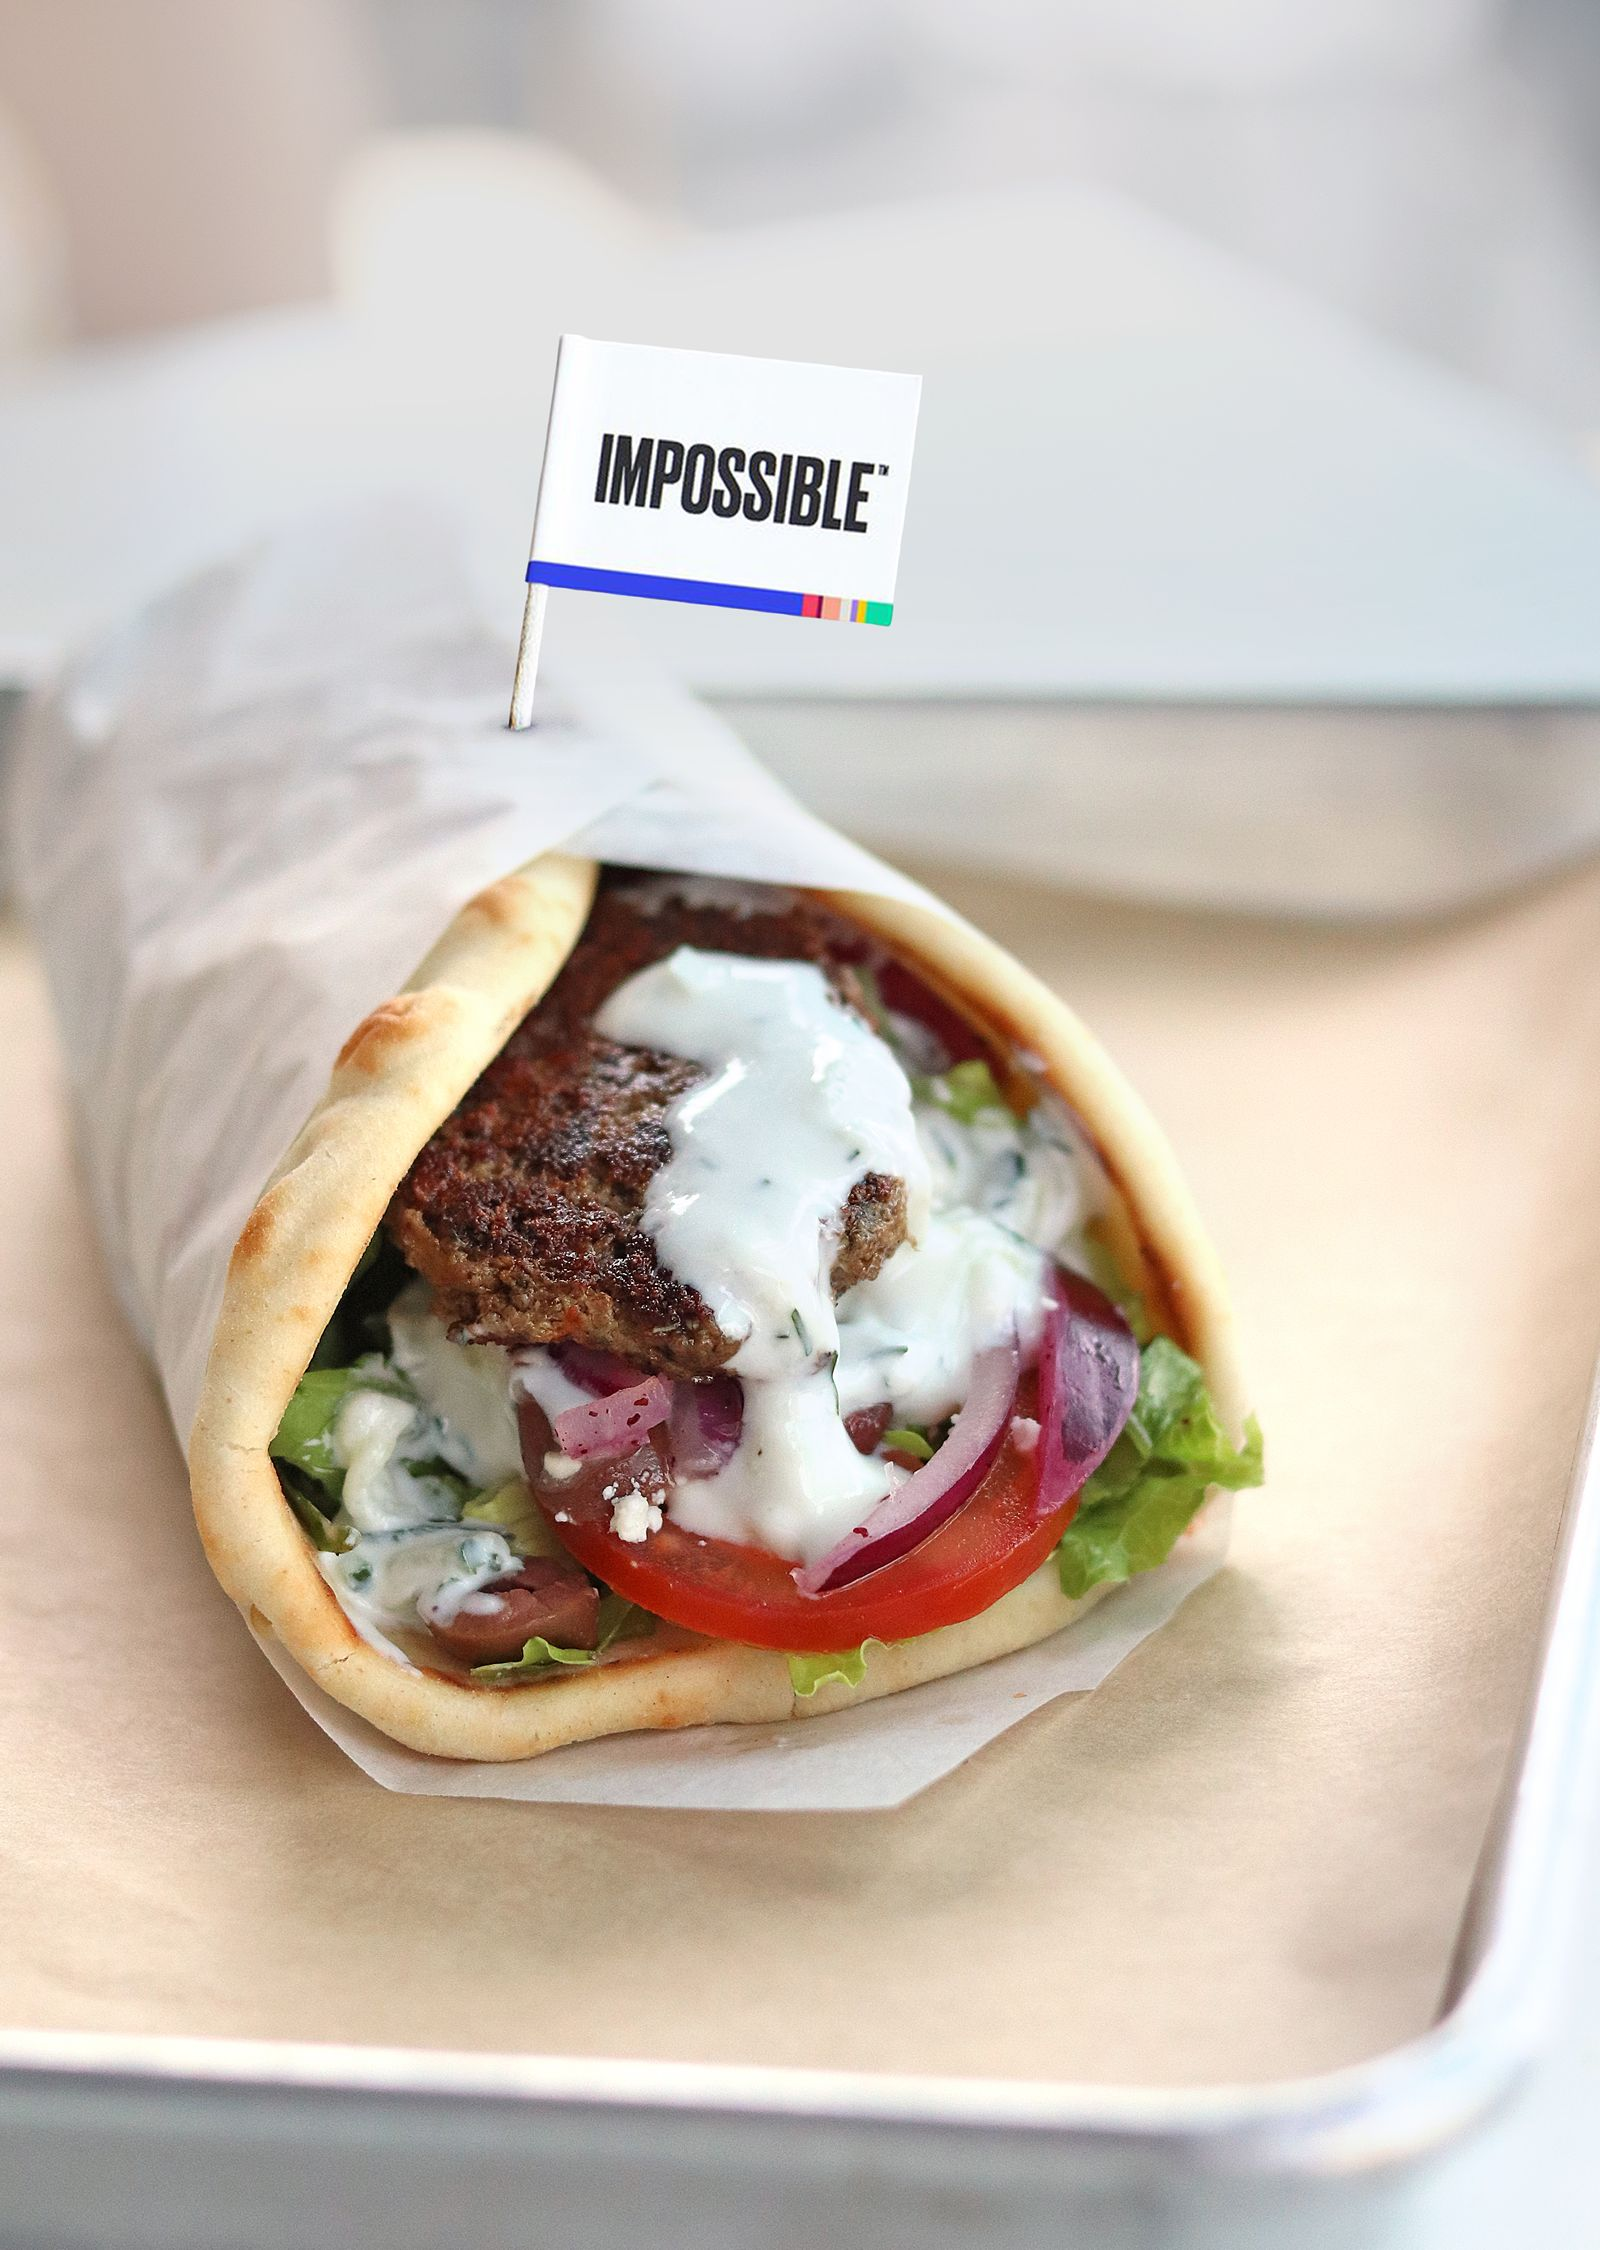 Yalla Mediterranean Offers Plant-Based Options with Impossible Foods